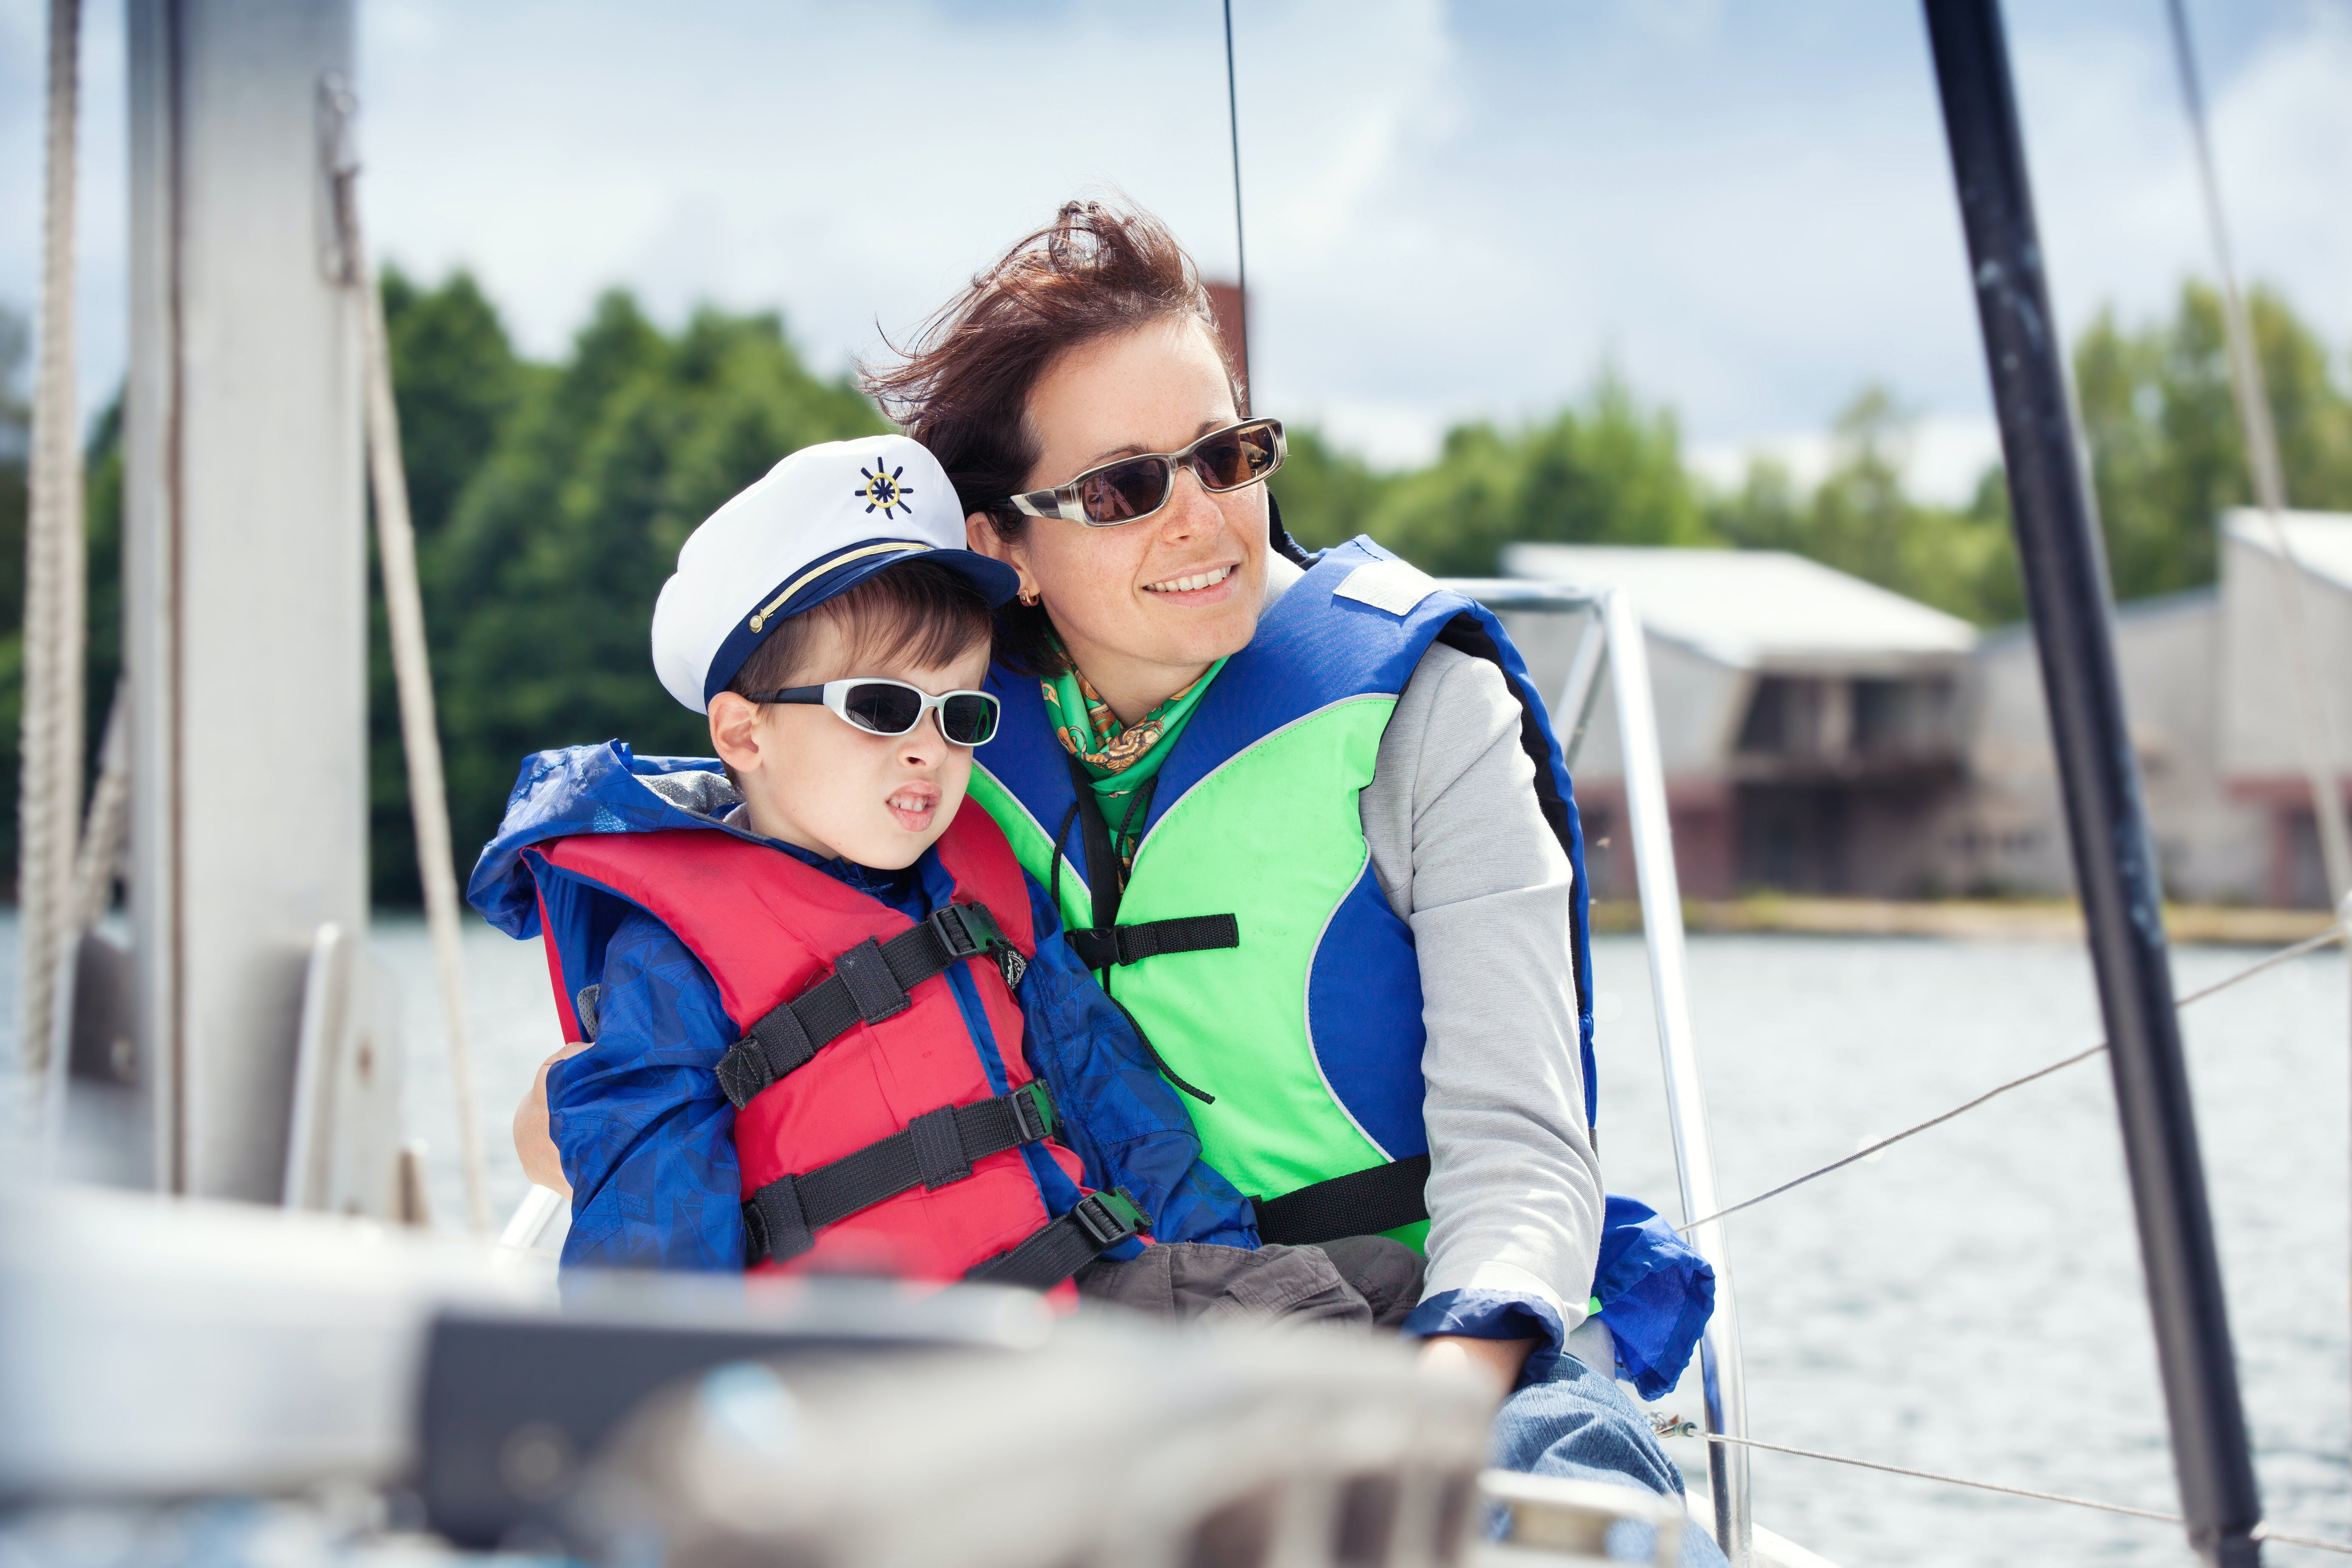 No matter what size vessel you're enjoying on the water, boating safety, including always wearing an appropriately-sized lifejacket, should be the number one priority.